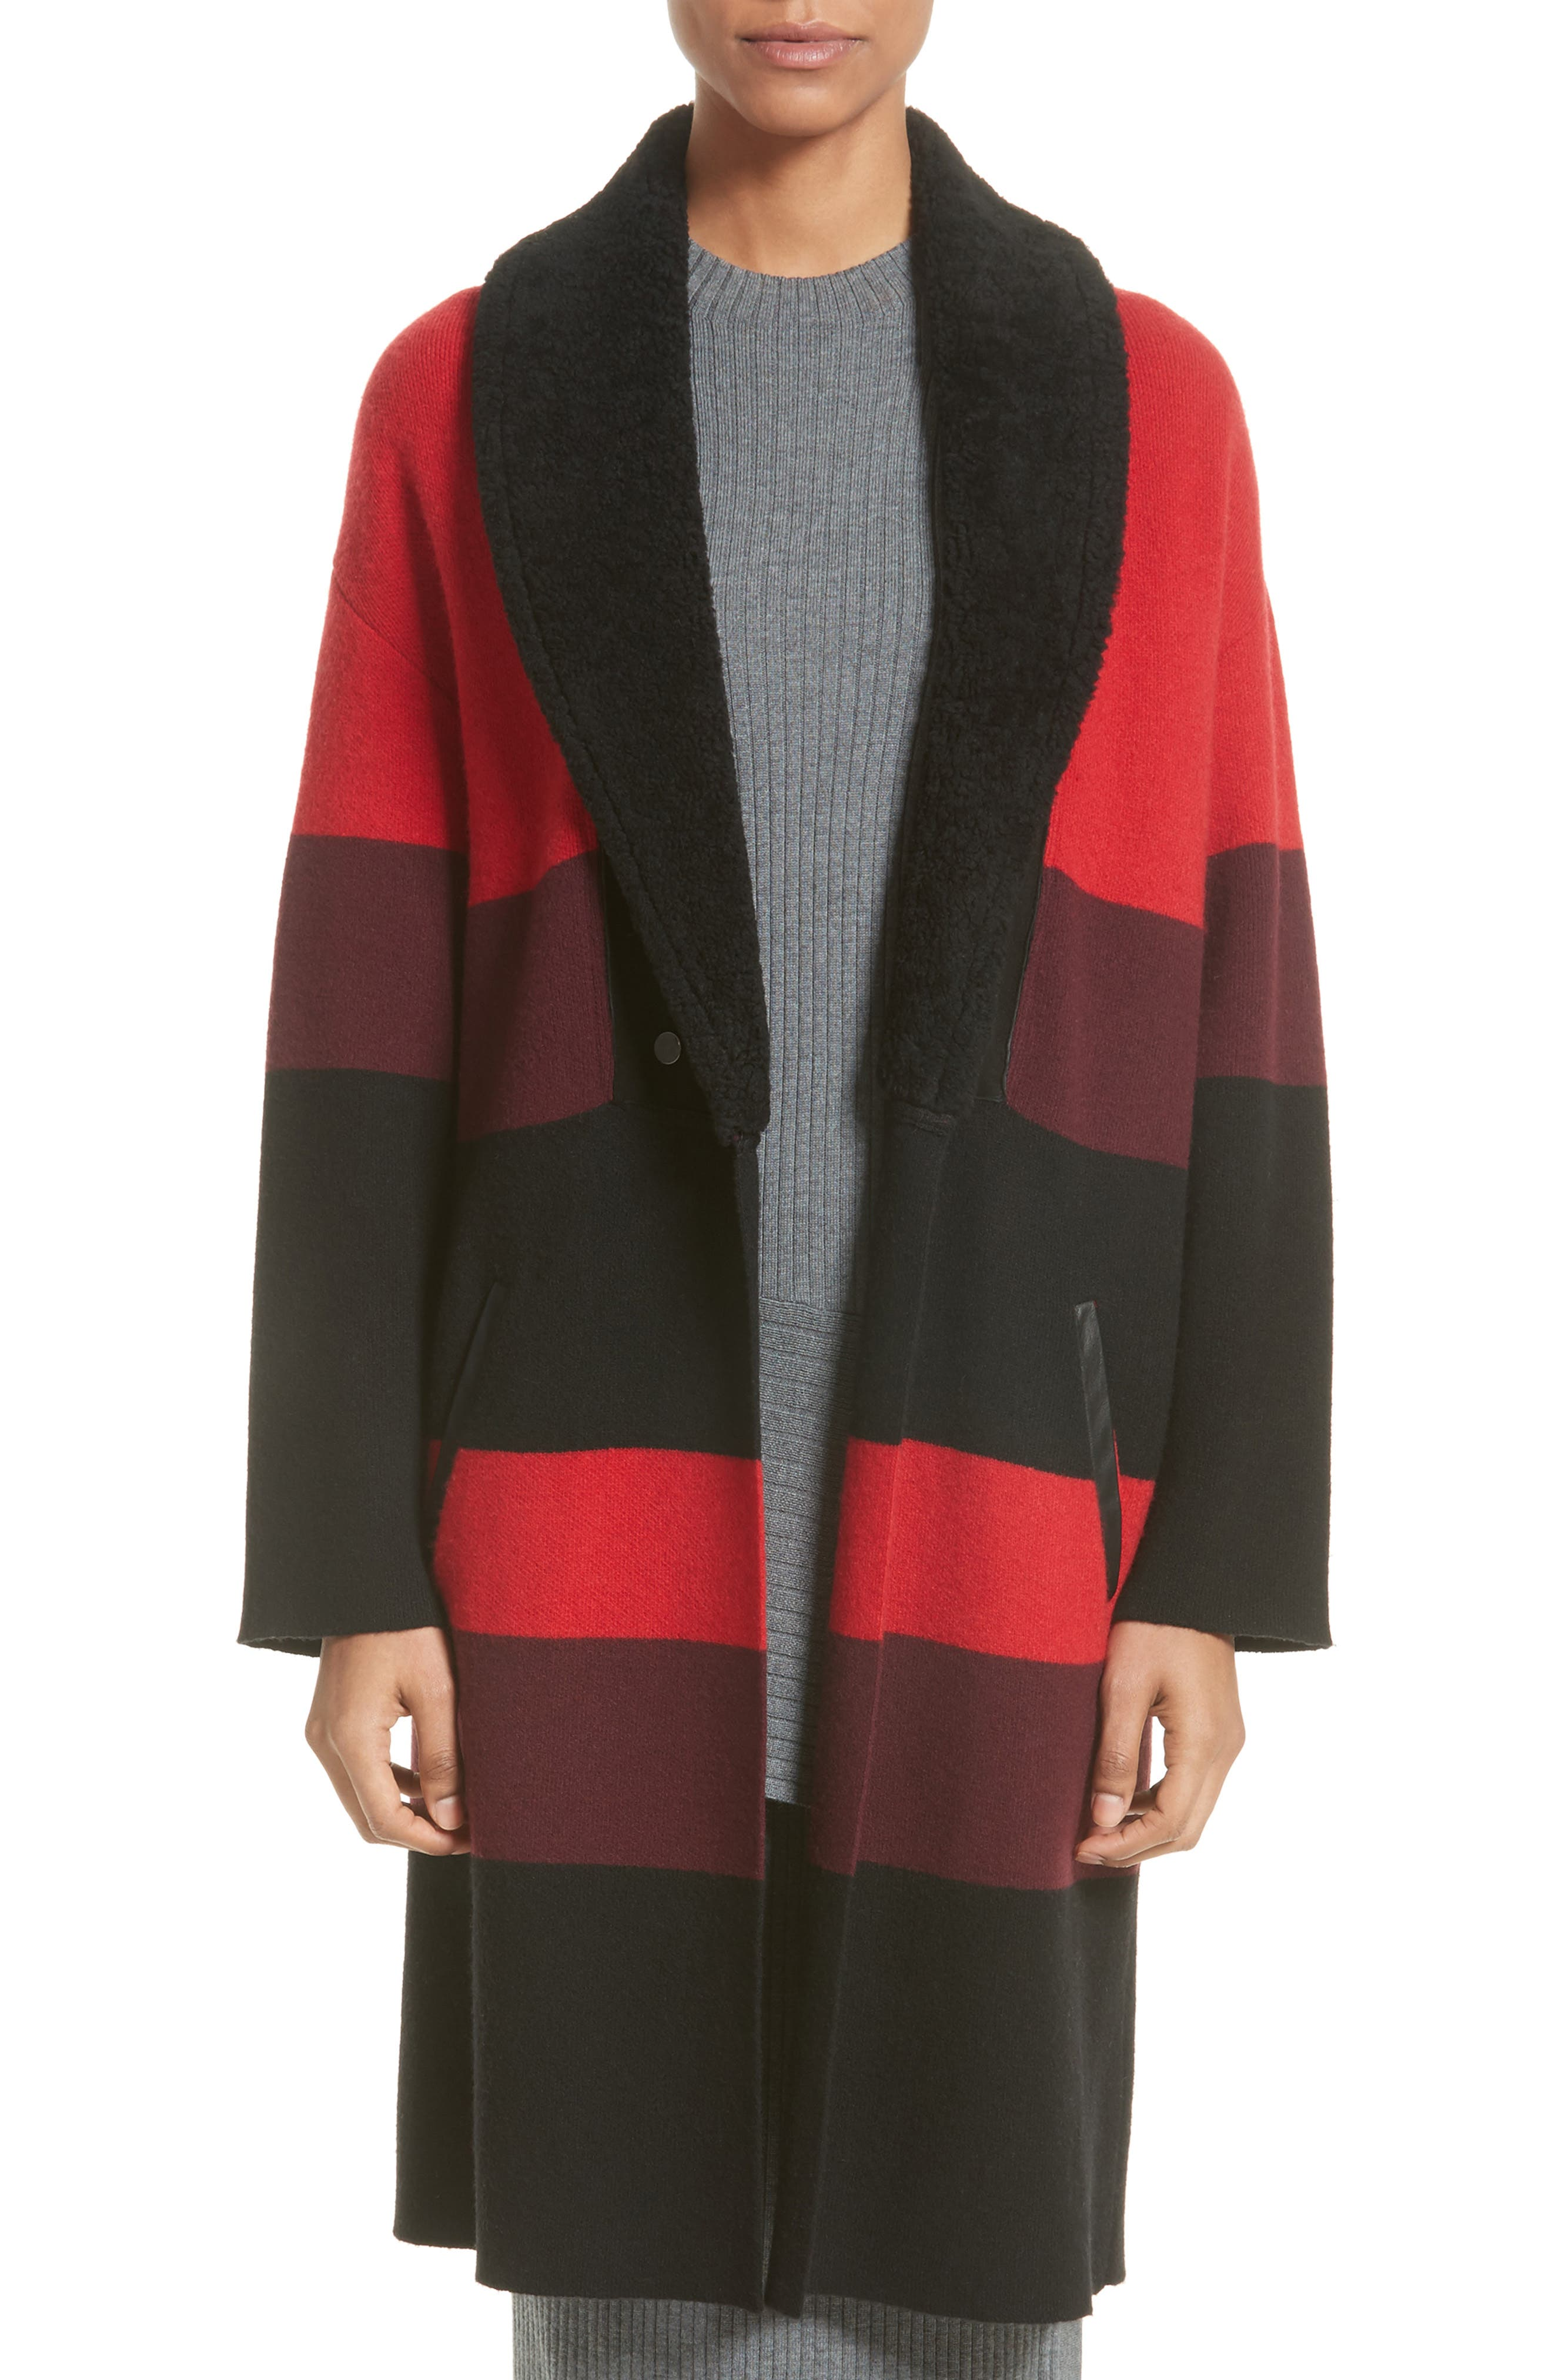 Double Knit Felted Wool Blend Coat with Genuine Shearling Collar,                             Main thumbnail 1, color,                             Caviar/ Sari Multi